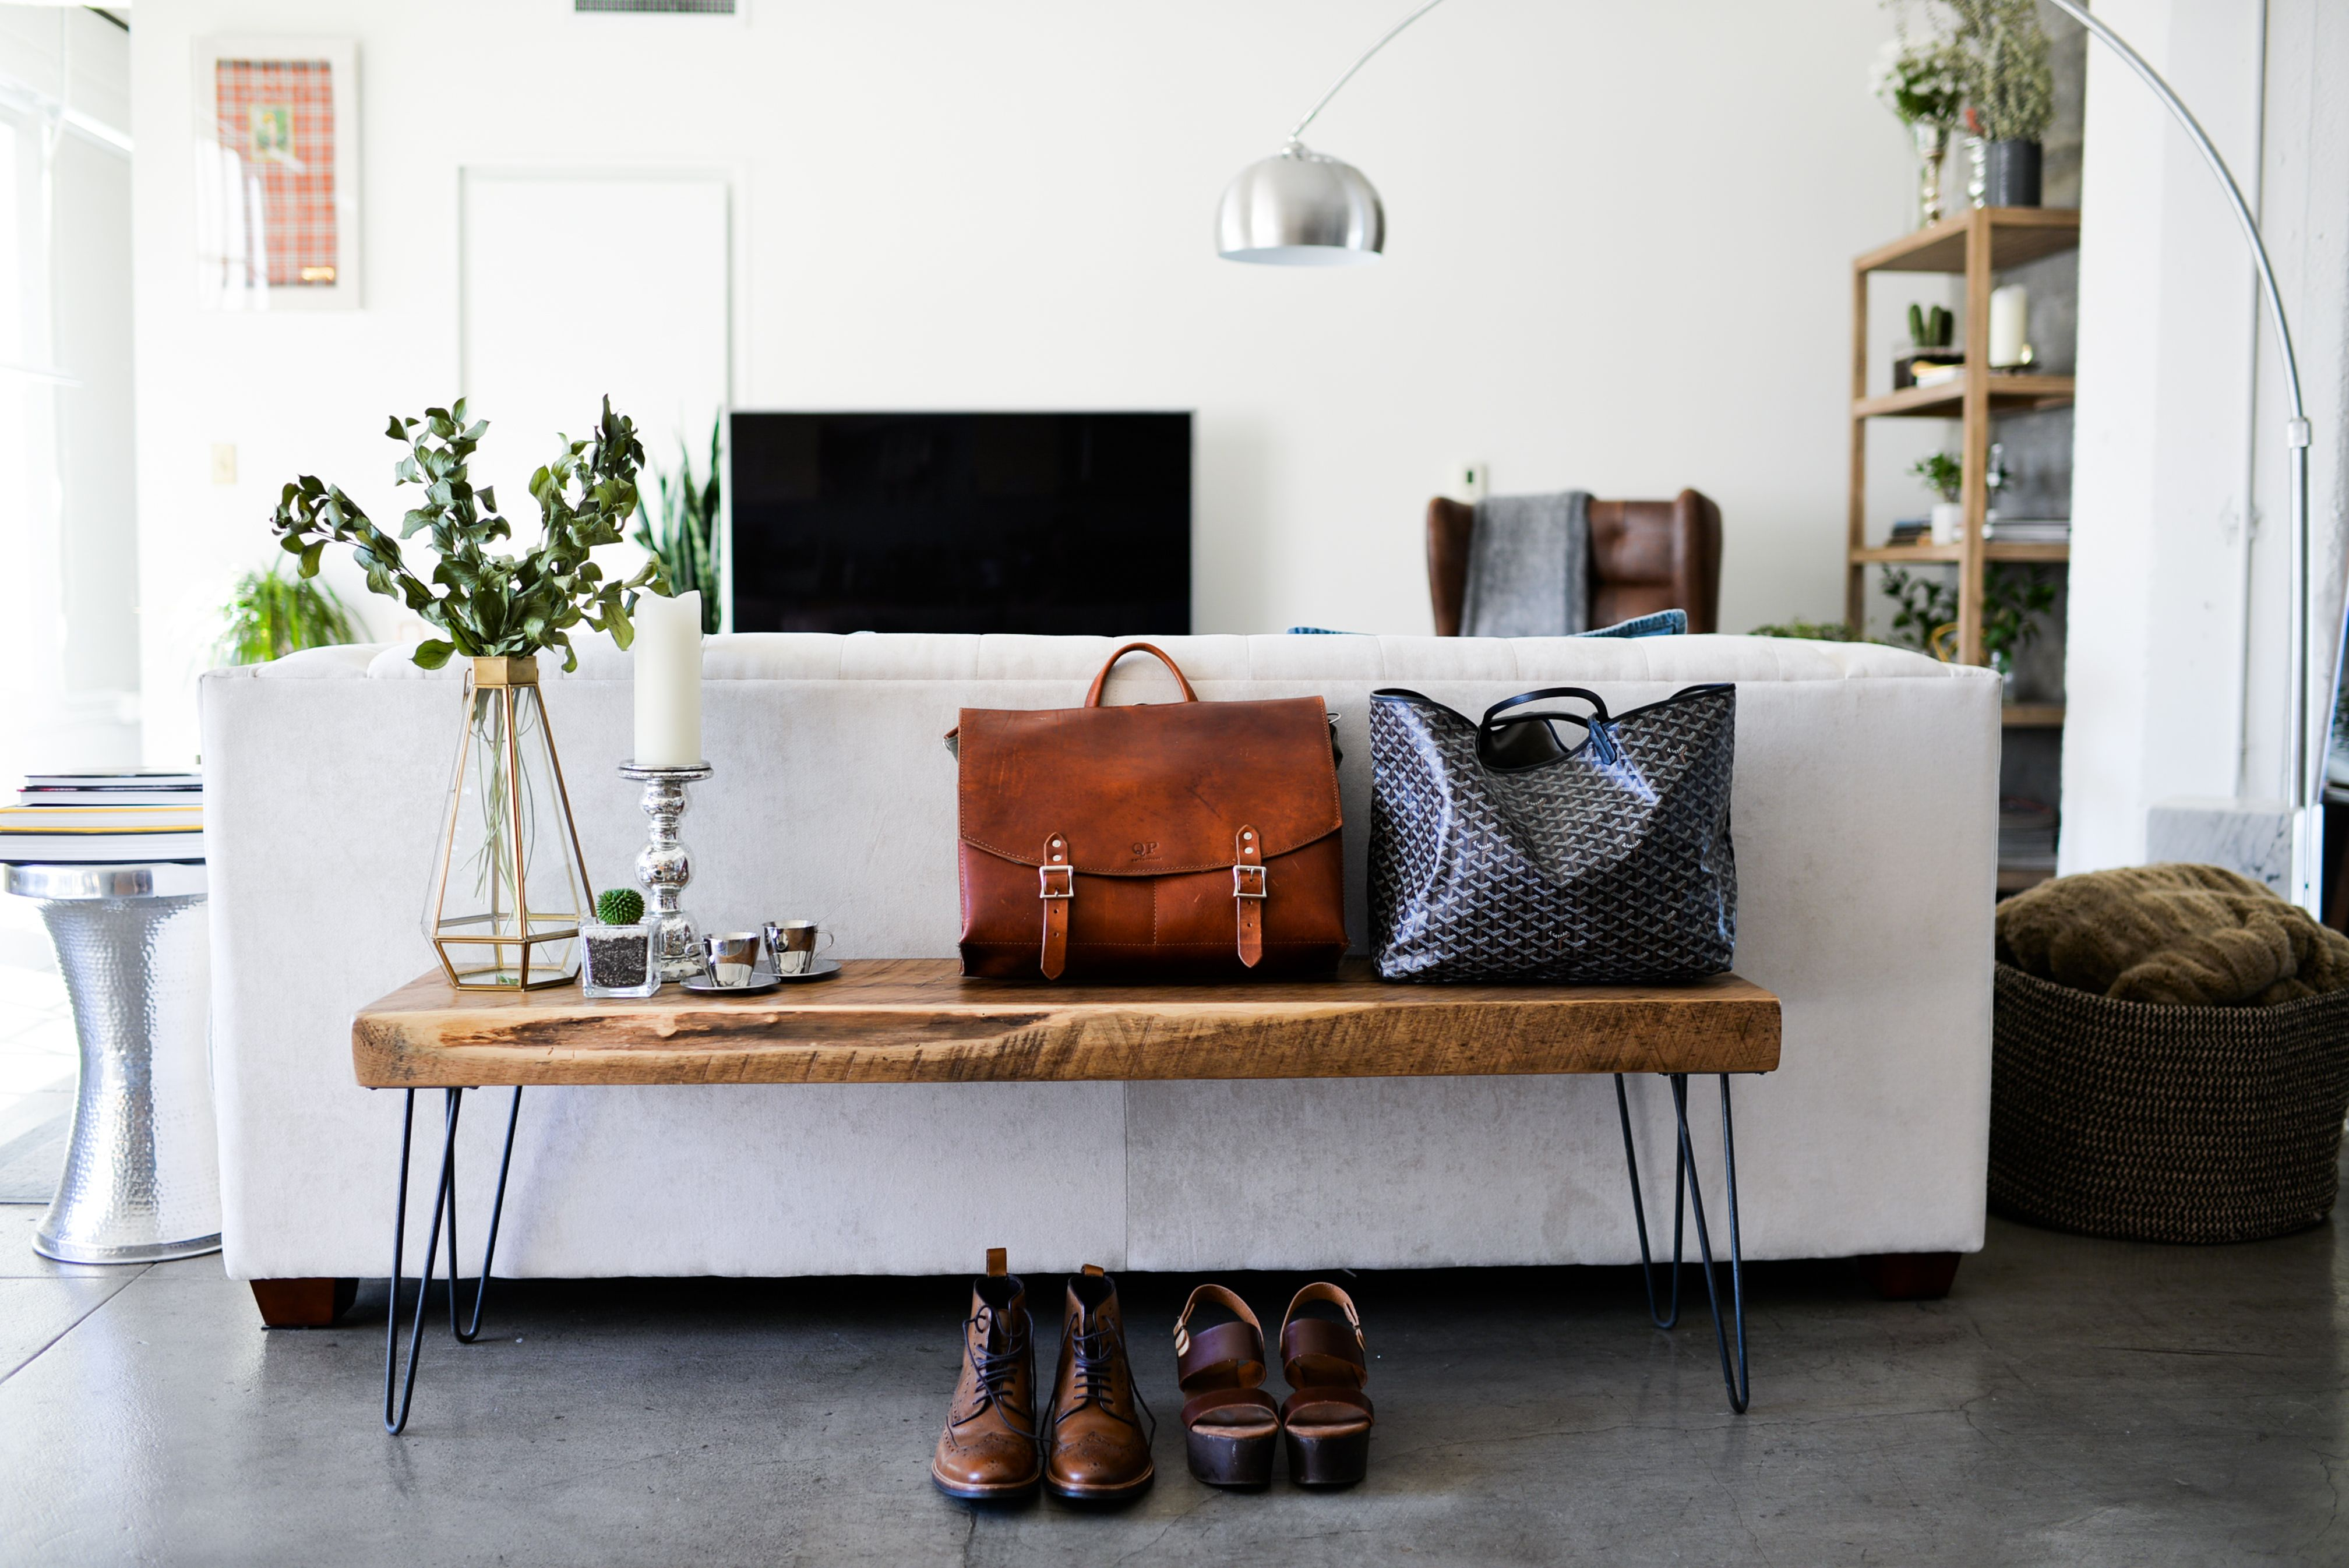 Havenly Is The #1 Place To Get Professional Interior Design Service,  Starting At $79